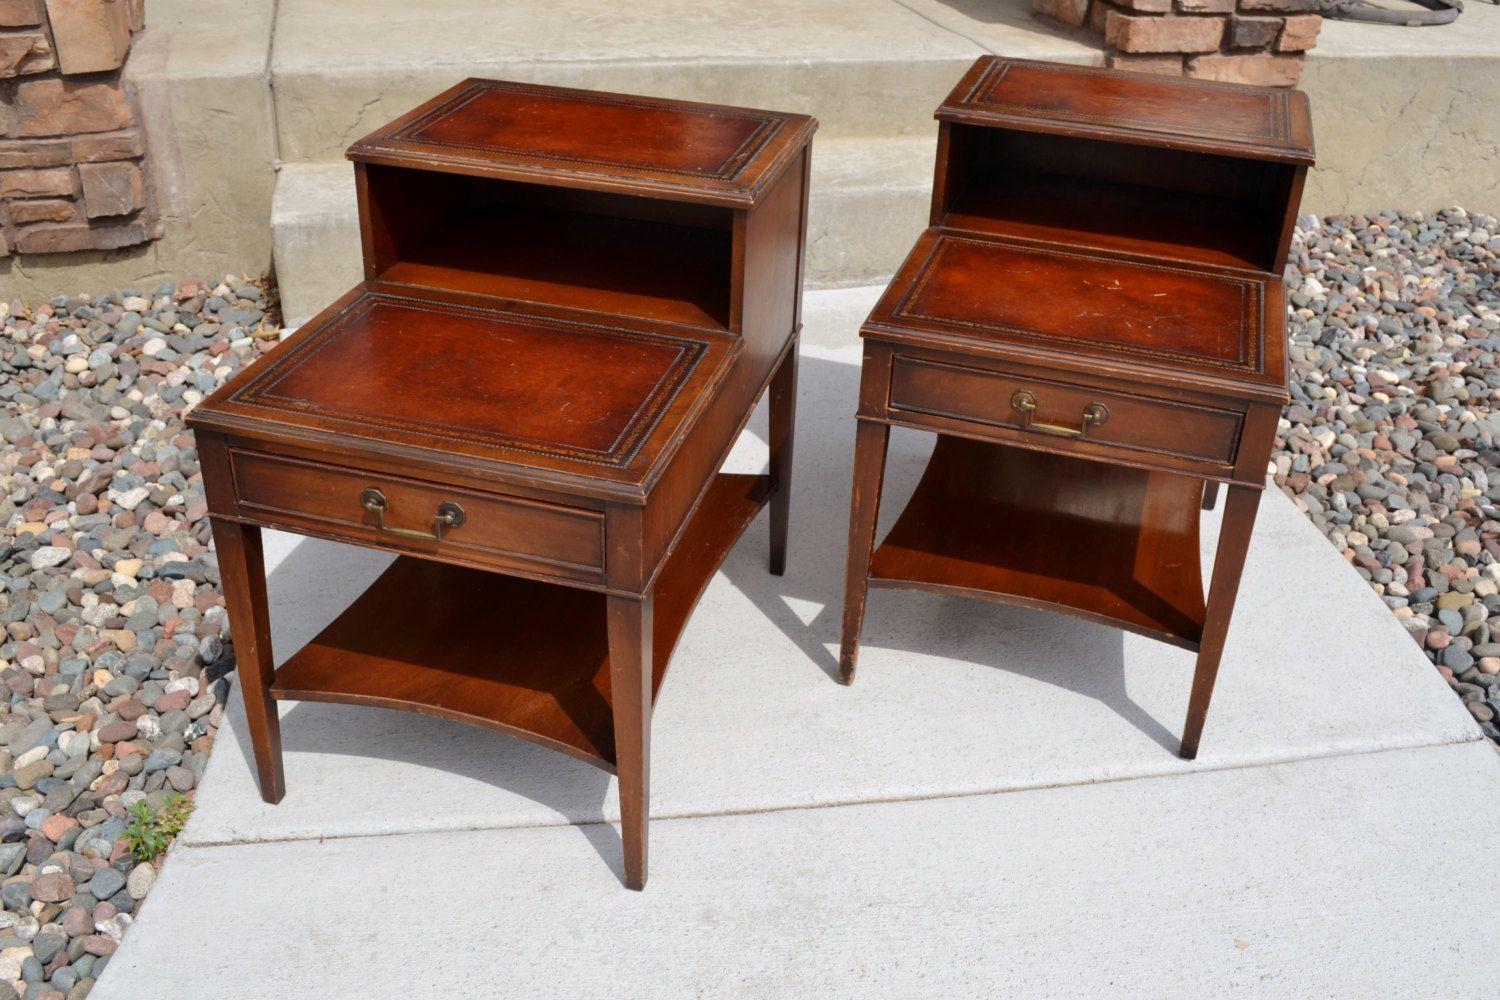 set vintage mahogany leather top step end tables and coffee table best for furniture pair with drawer mid century night stand genuine chalksolot painted bedside ideas sauder home